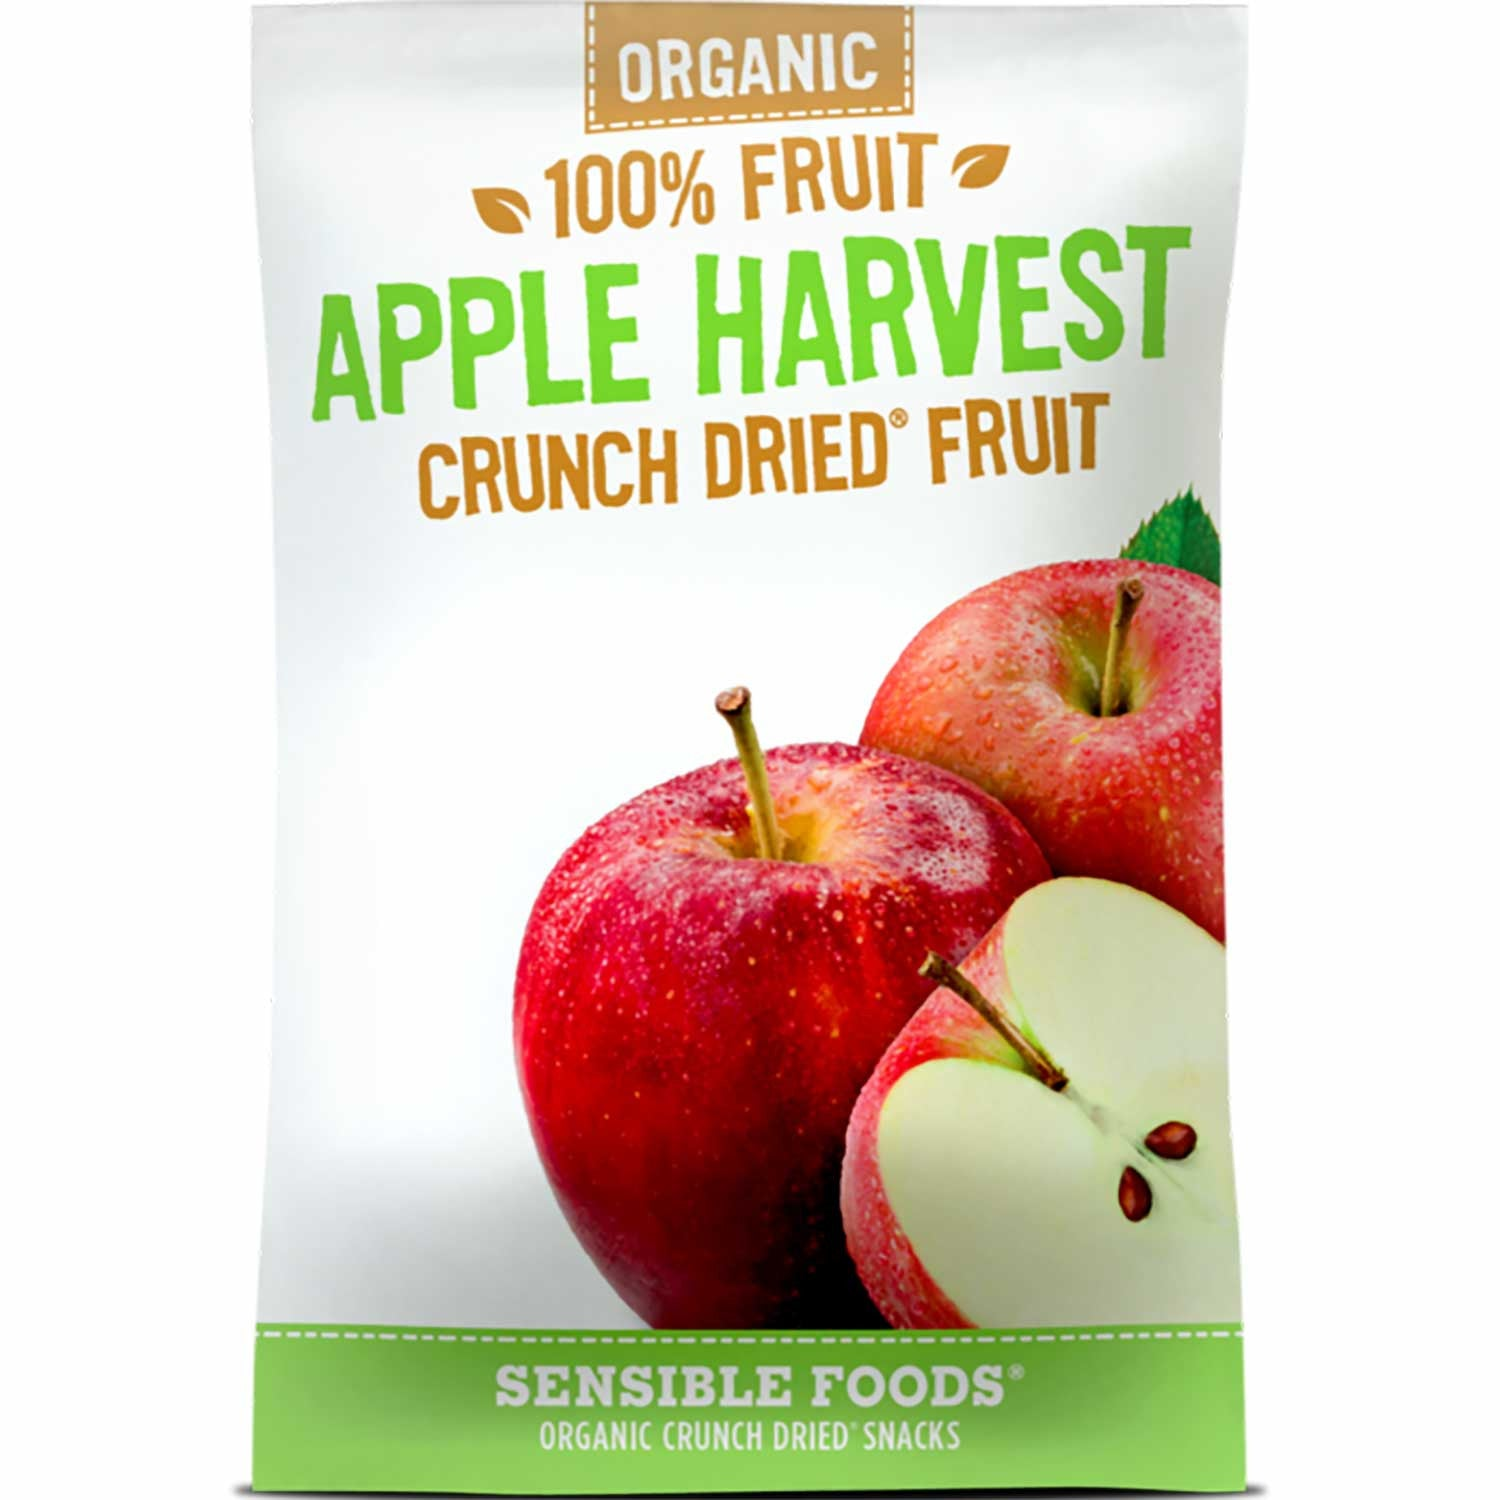 Sensible Foods Organic 100% Fruit Apple Harvest Crunch Dried Fruit, 37g.-NaturesWisdom